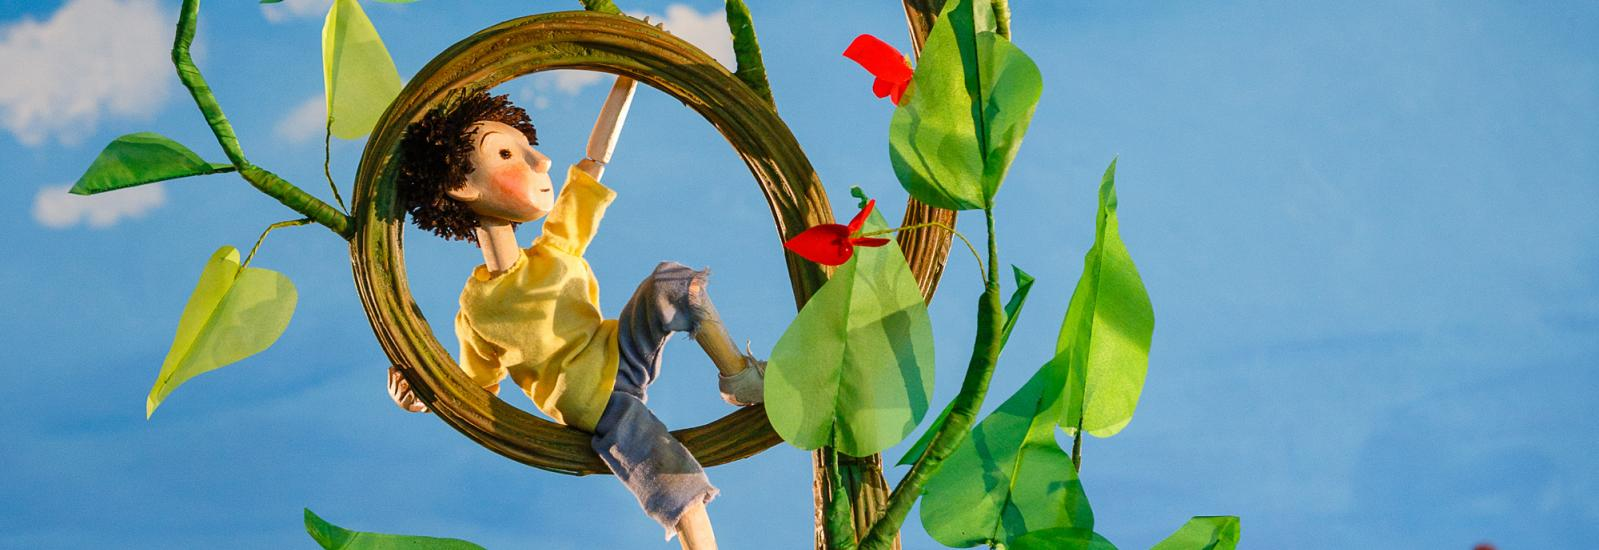 The Magic Beanstalk puppet show will be presented at The Eden Project